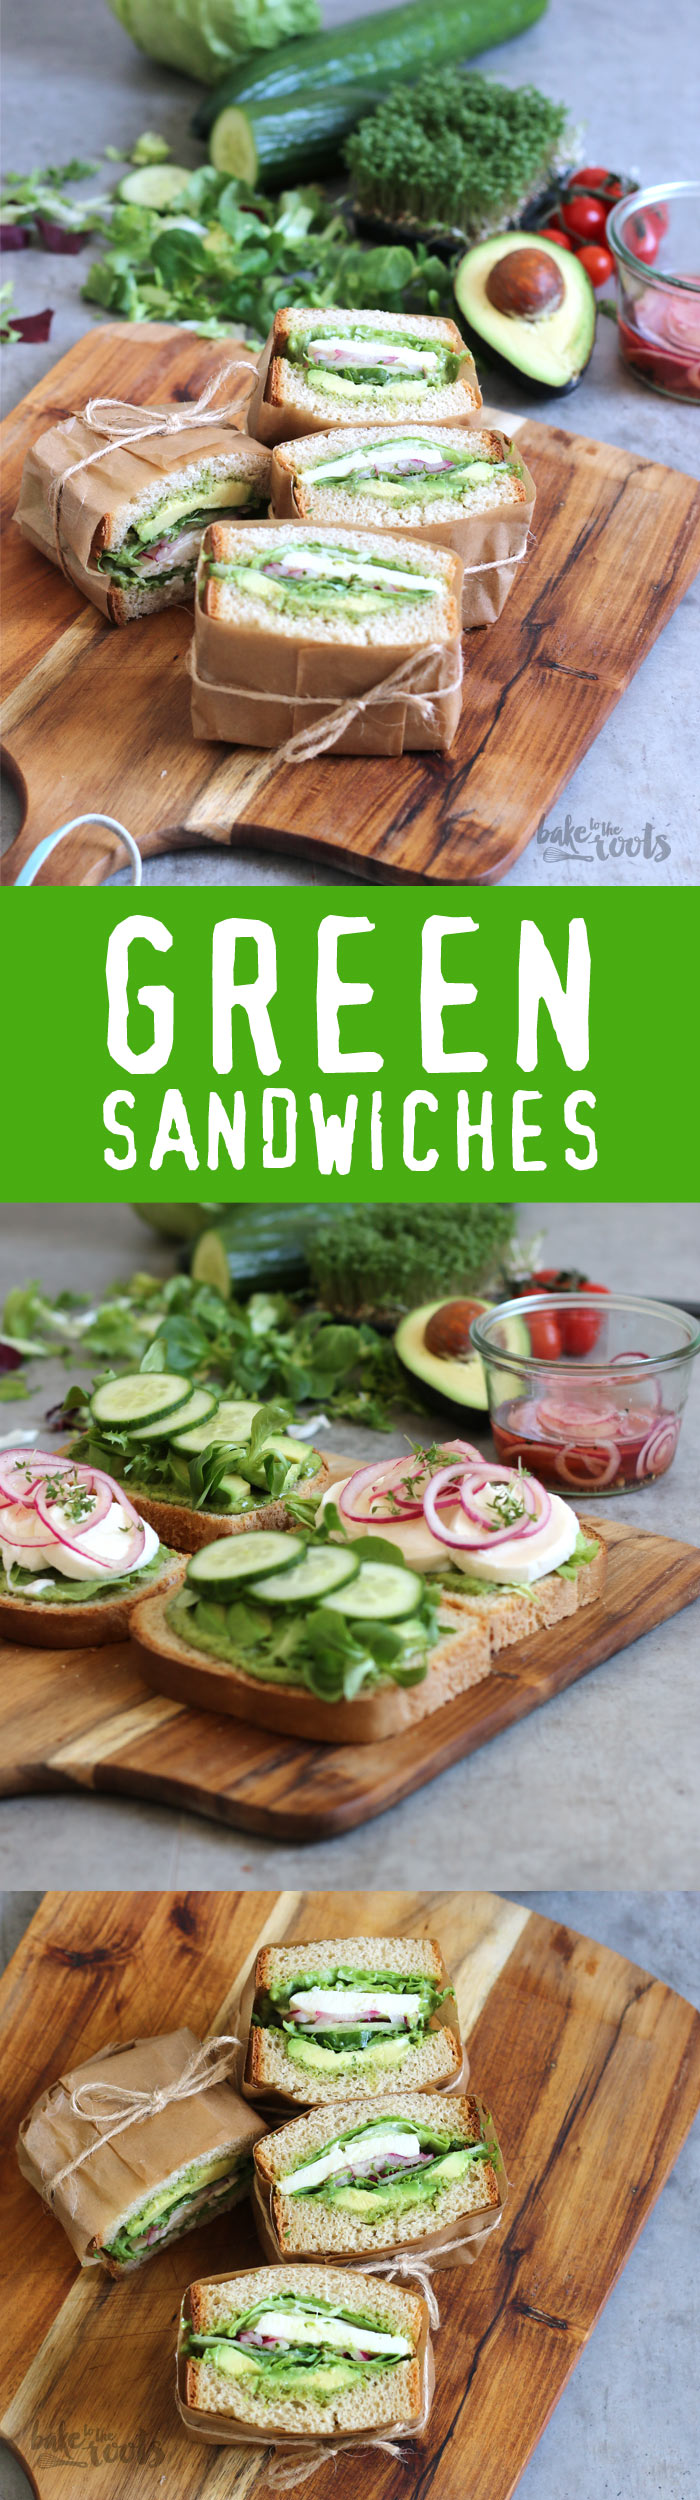 Delicious Green Sandwiches - quick and easy prepared | Bake to the roots